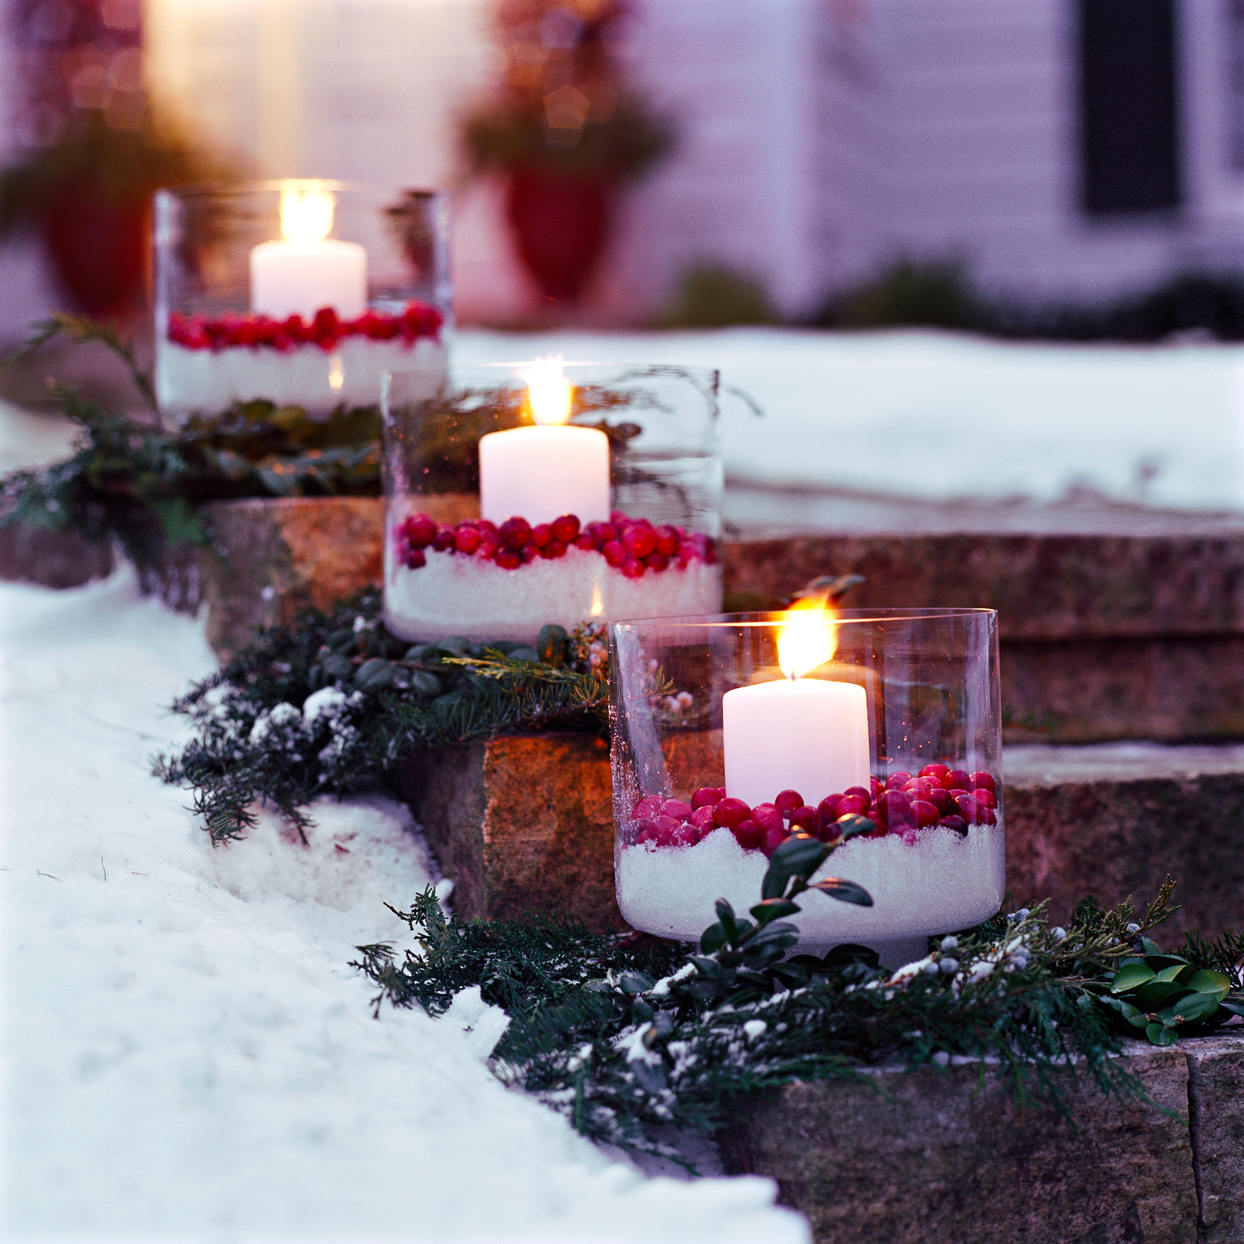 cranberry luminarias decorating snowy steps